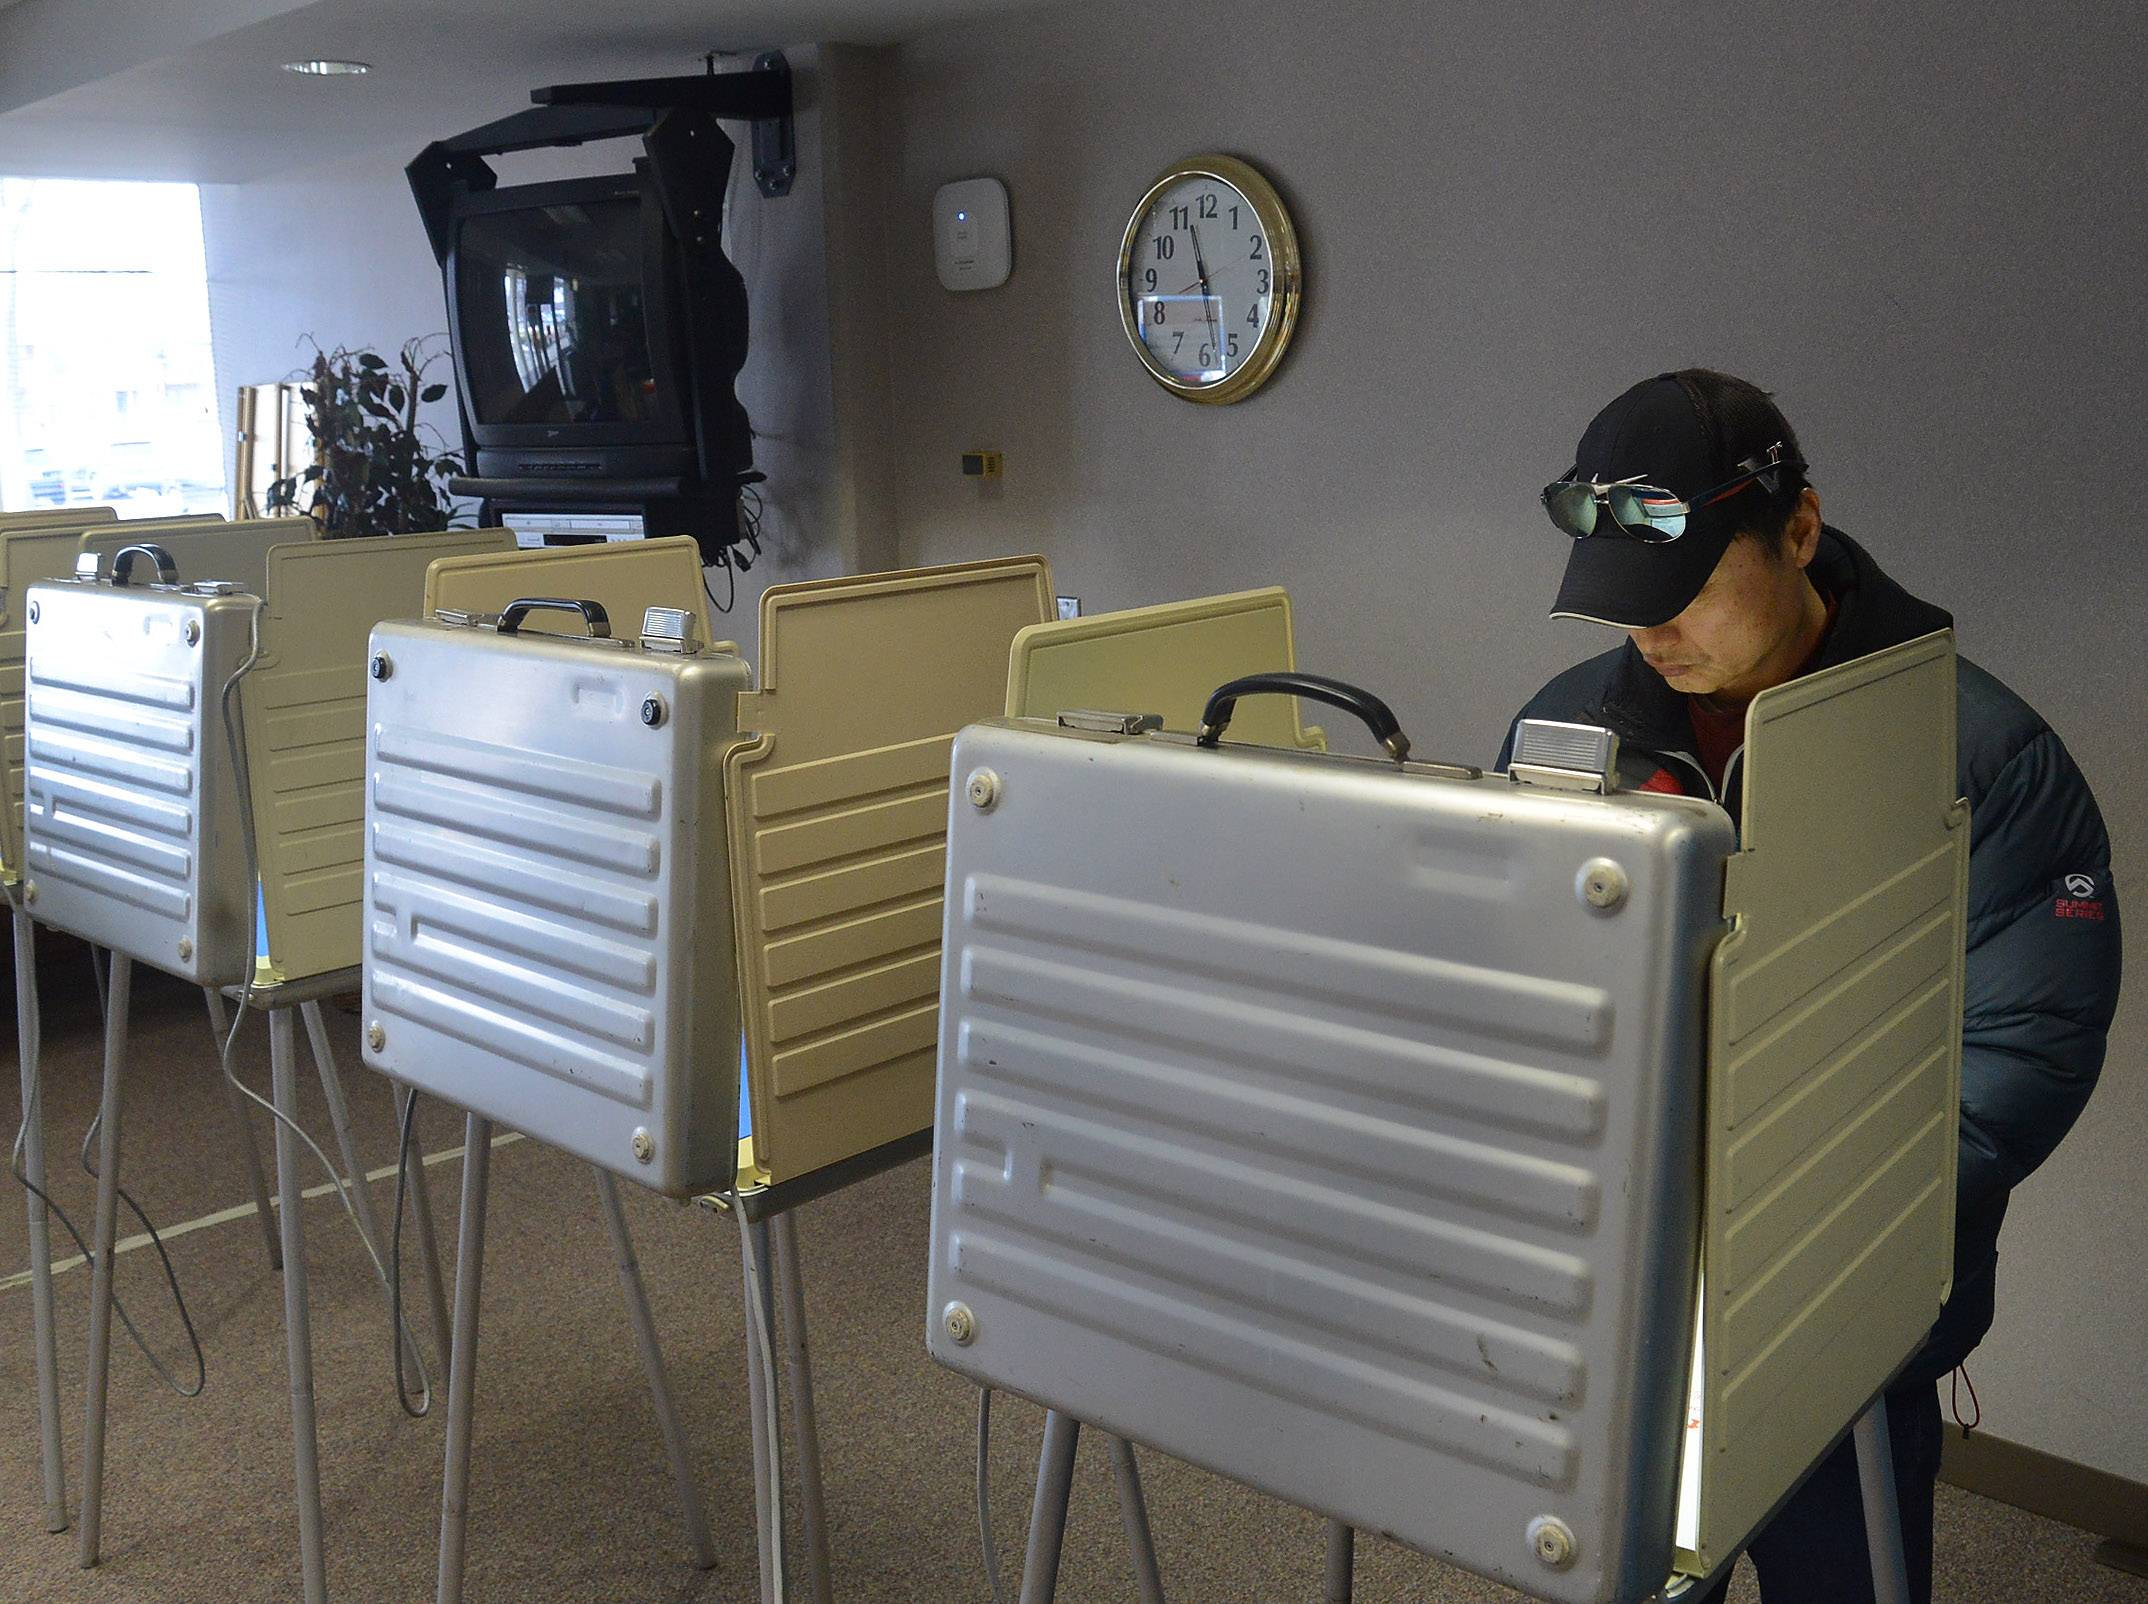 Voters in some Northwest suburban Cook County precincts will cast their ballots in different polling places for the primary election on Tuesday, March 20.